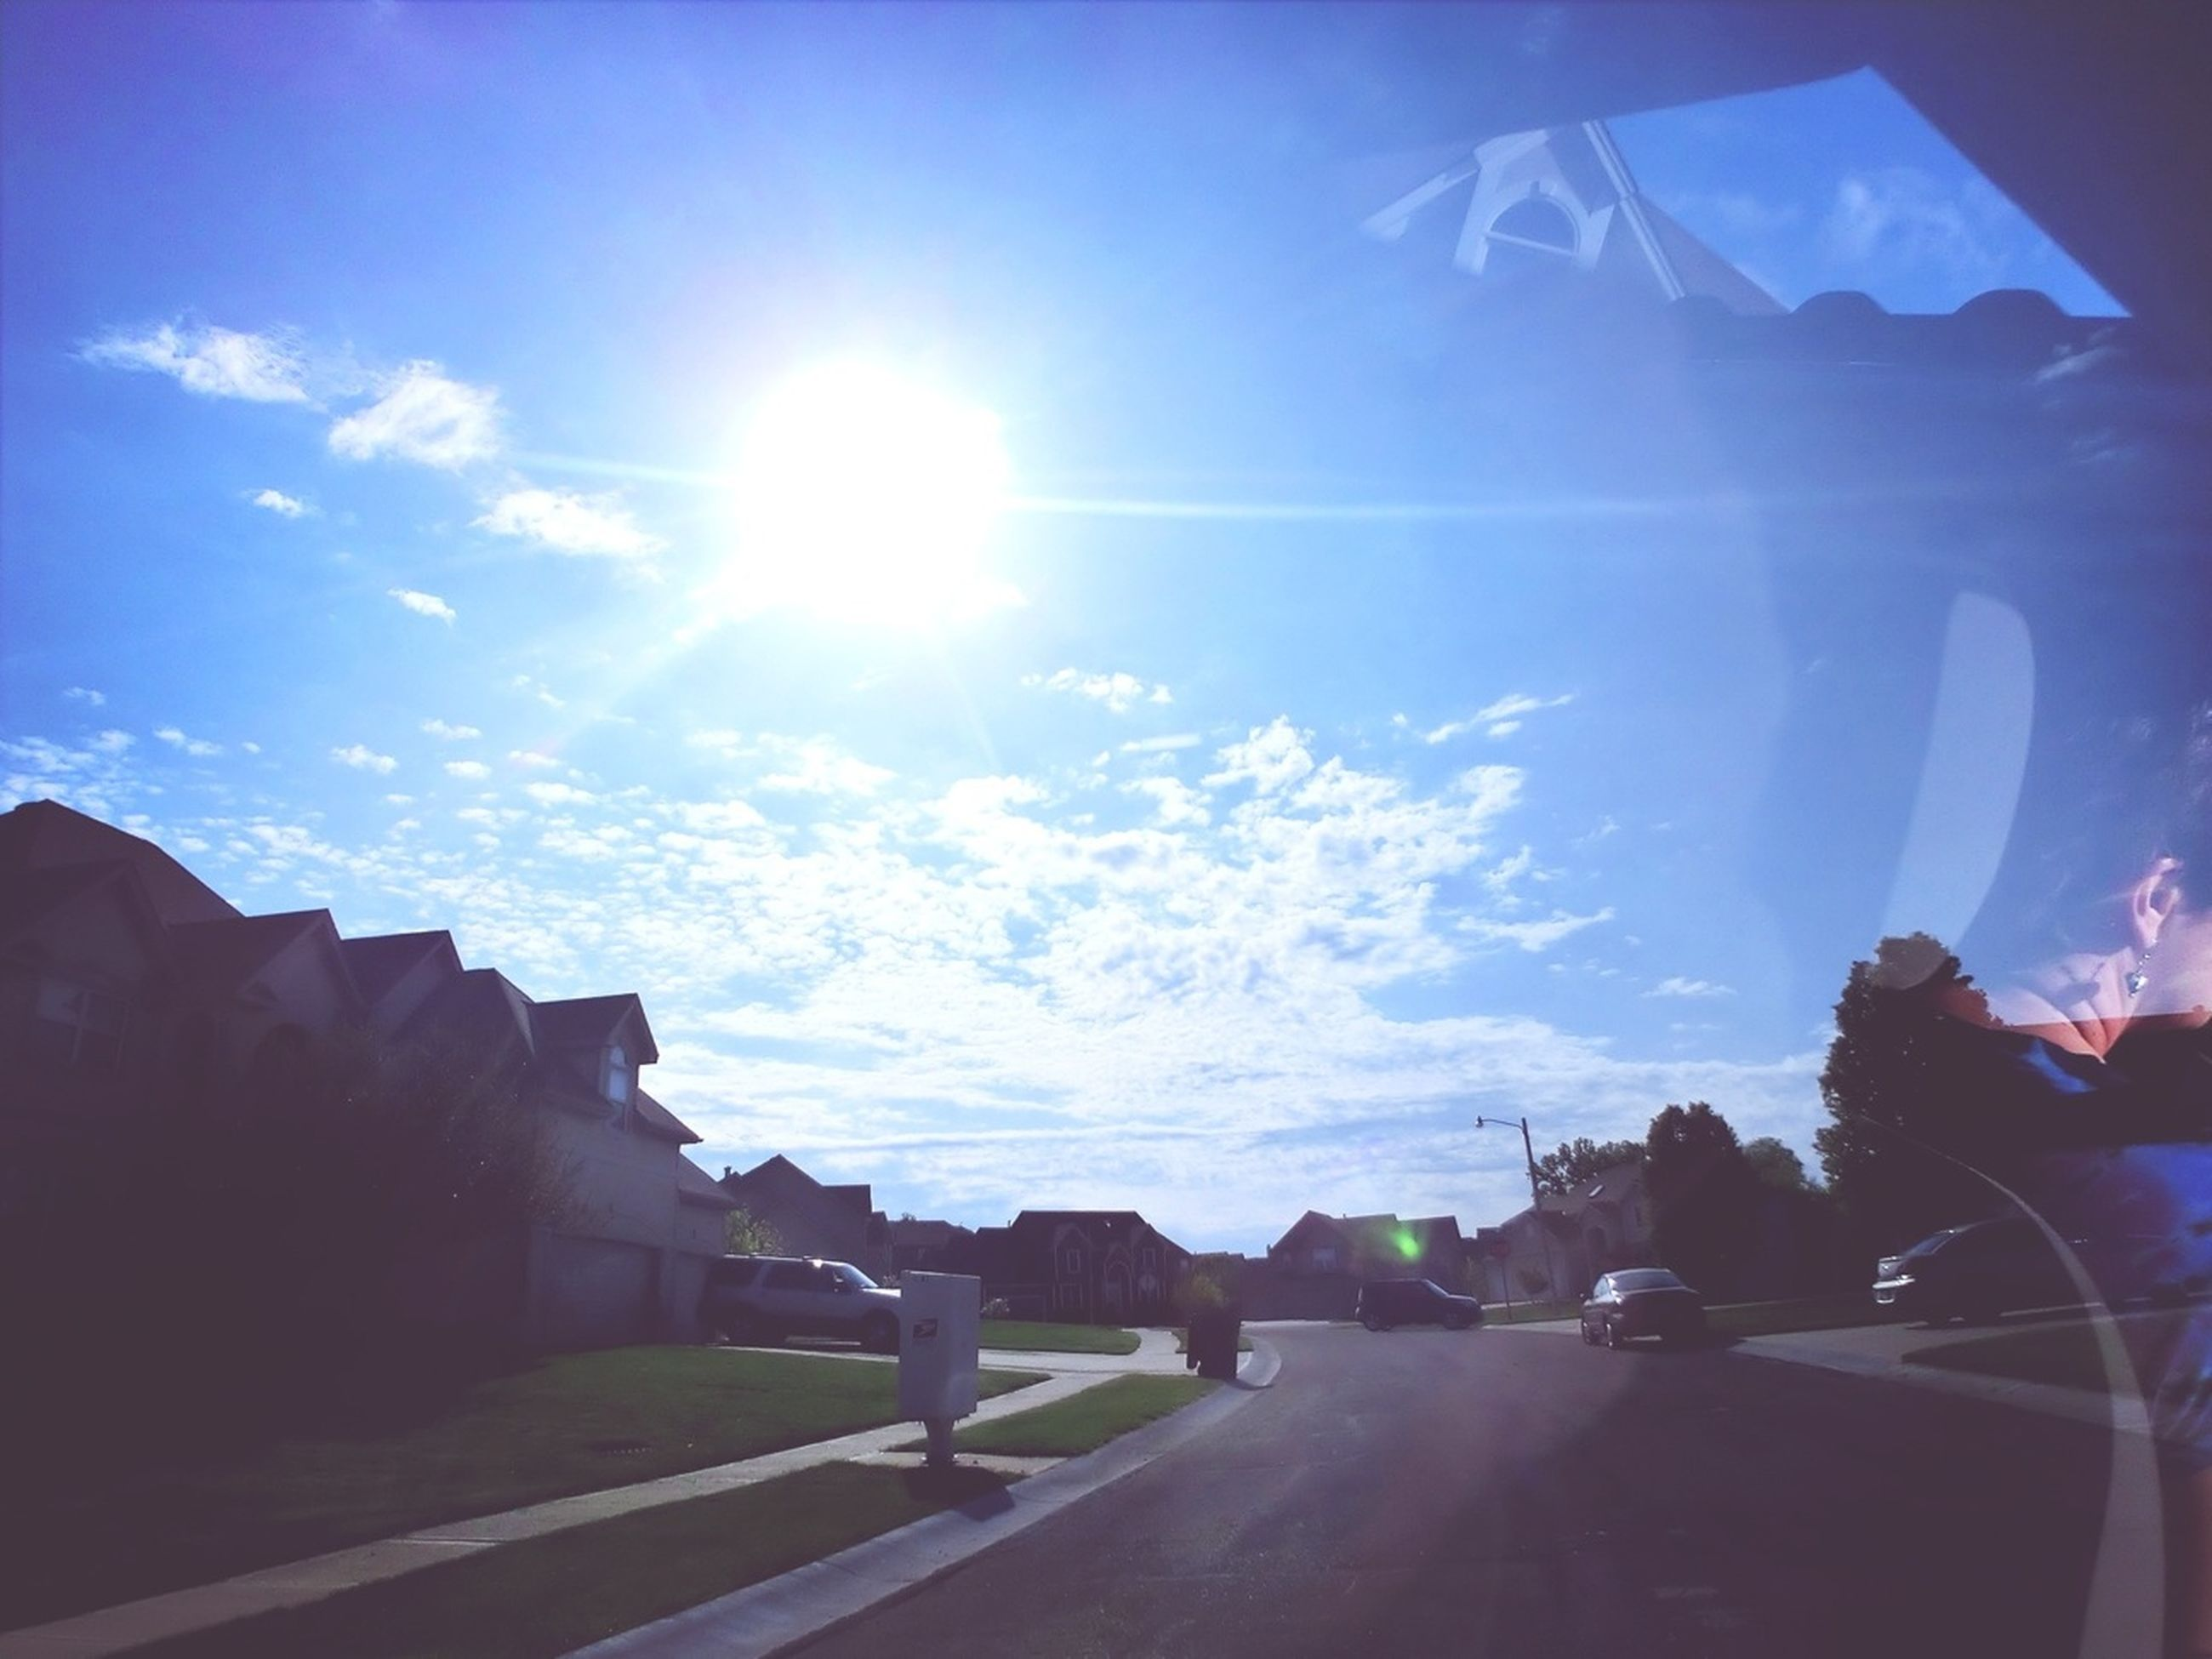 sunbeam, sun, lens flare, transportation, sunlight, sky, road, blue, the way forward, car, sunny, cloud - sky, land vehicle, mode of transport, nature, cloud, day, landscape, beauty in nature, bright